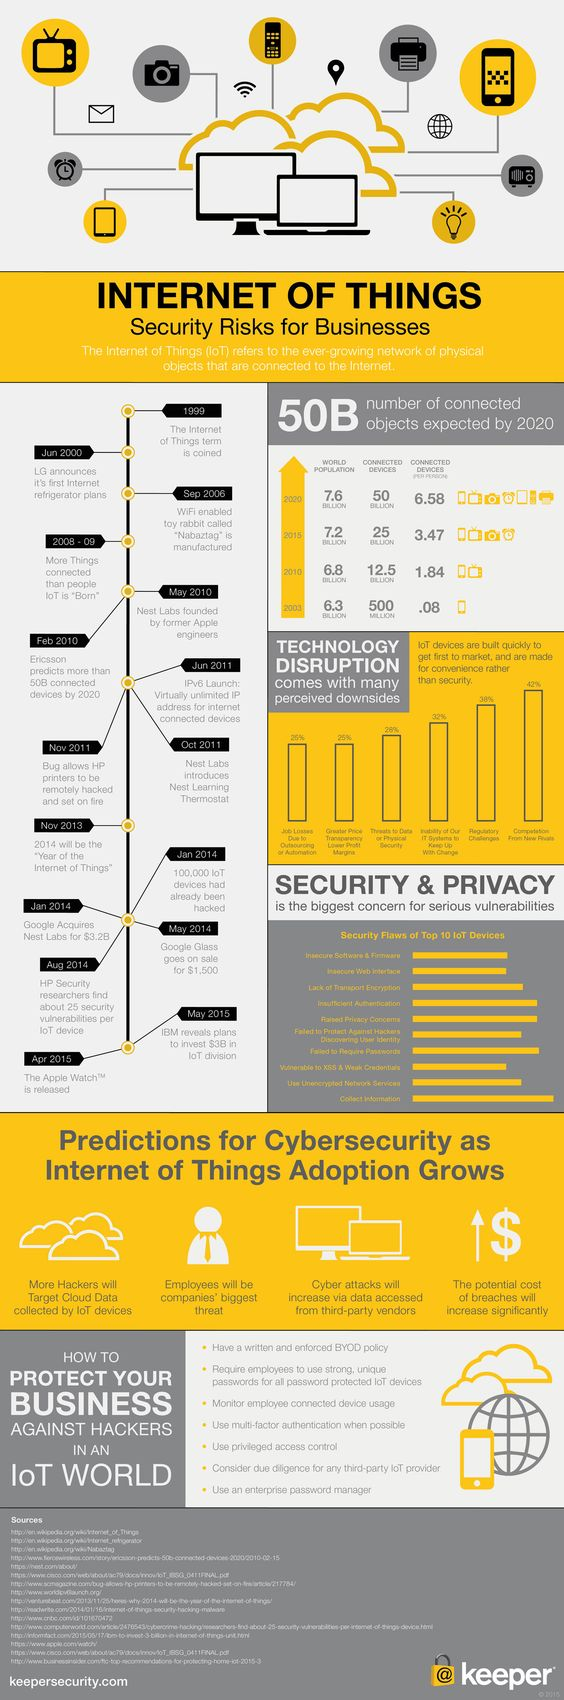 The Internet of Things Is Lots of Fun. Here's How to Make It Safe (Infographic) | Inc.com